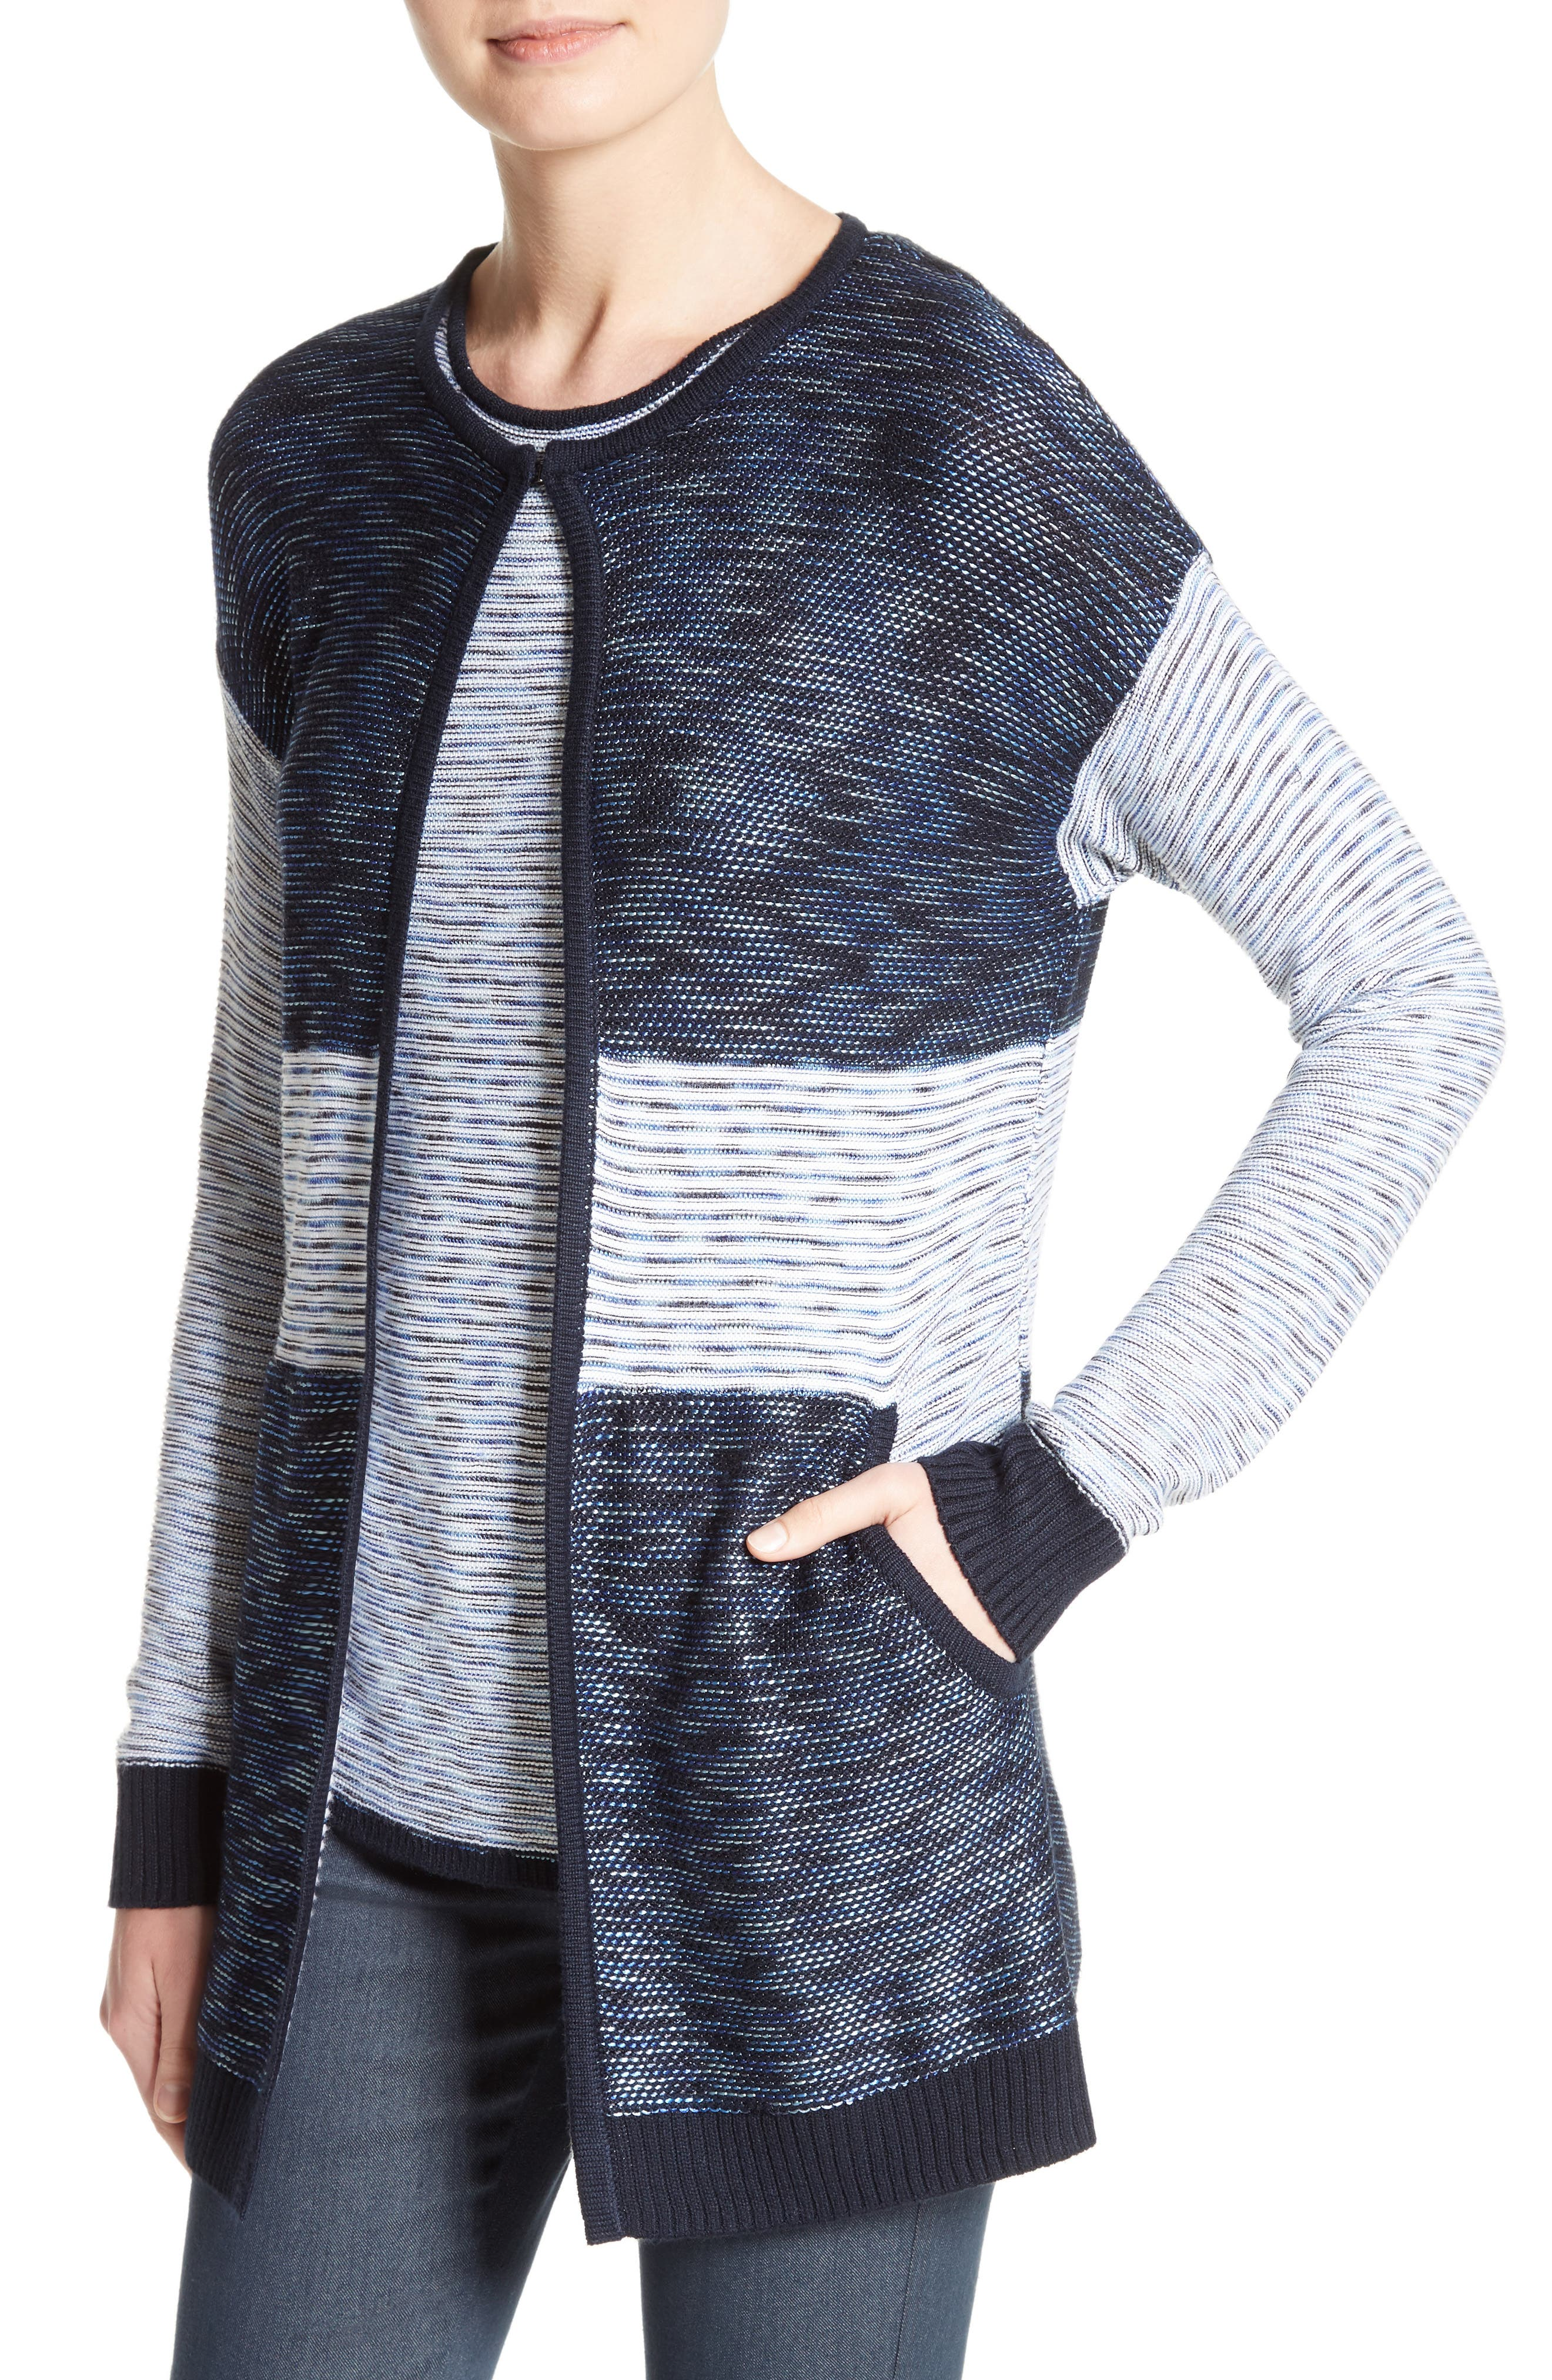 Chambray Effect Links Knit Cardigan,                             Alternate thumbnail 4, color,                             400